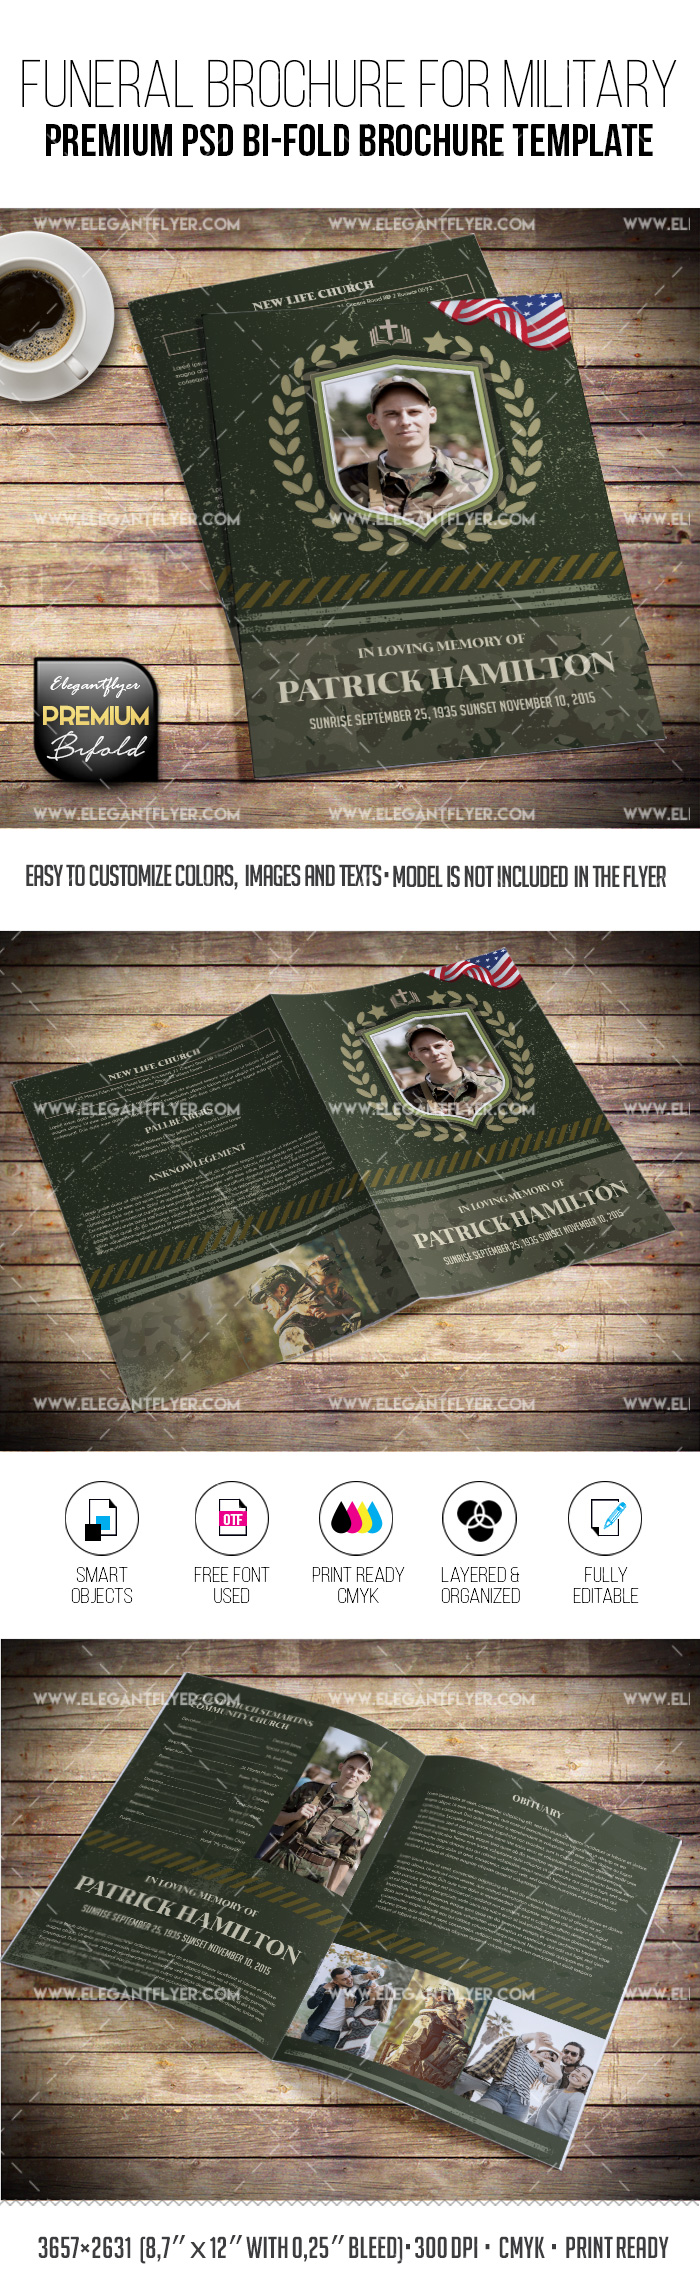 Funeral Brochure for Military – PSD Brochure Template